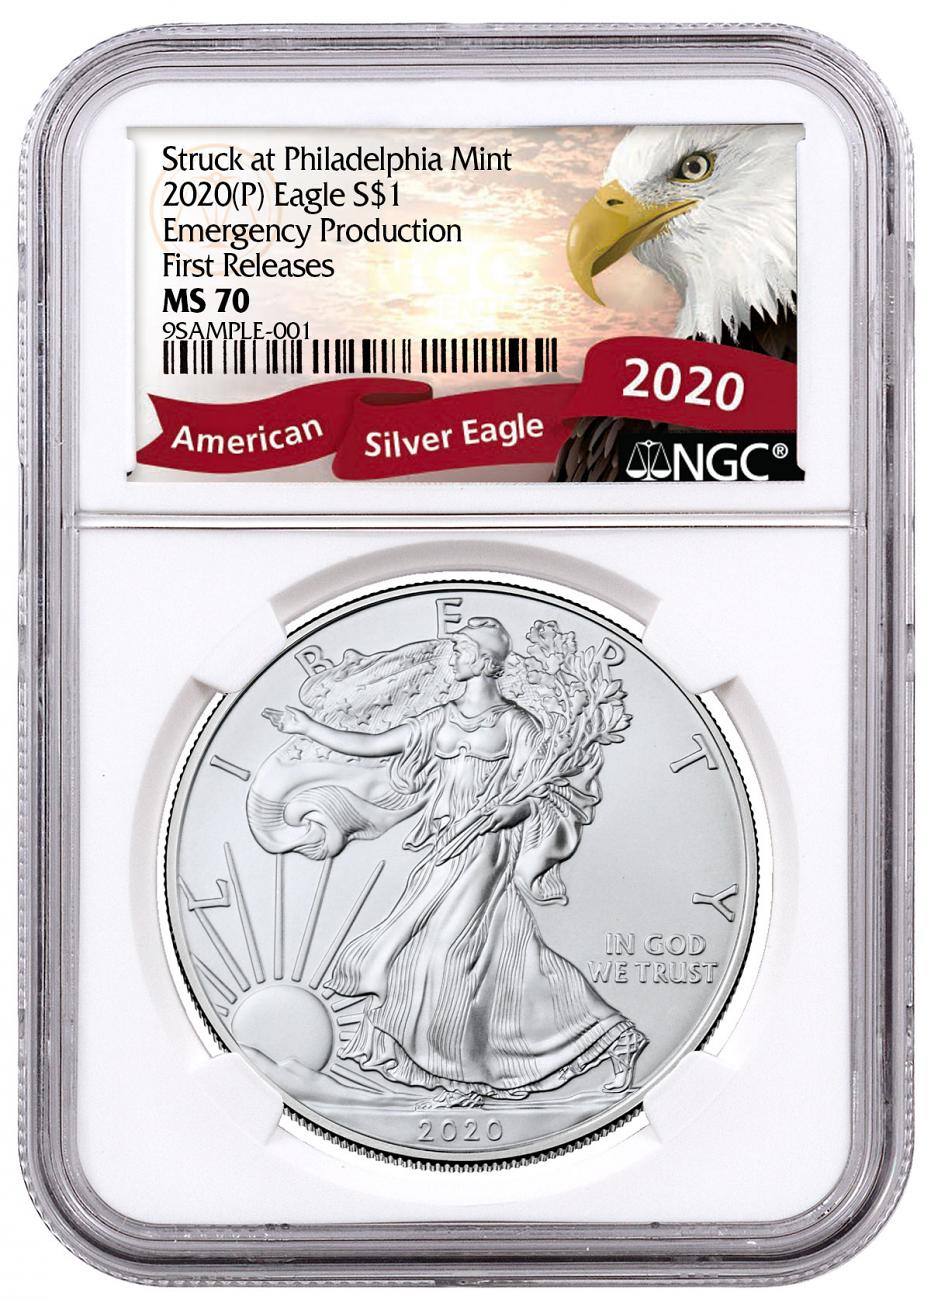 2020-(P) 1 oz Silver American Eagle Struck at Philadelphia $1 Coin NGC MS70 FR Exclusive Eagle Label